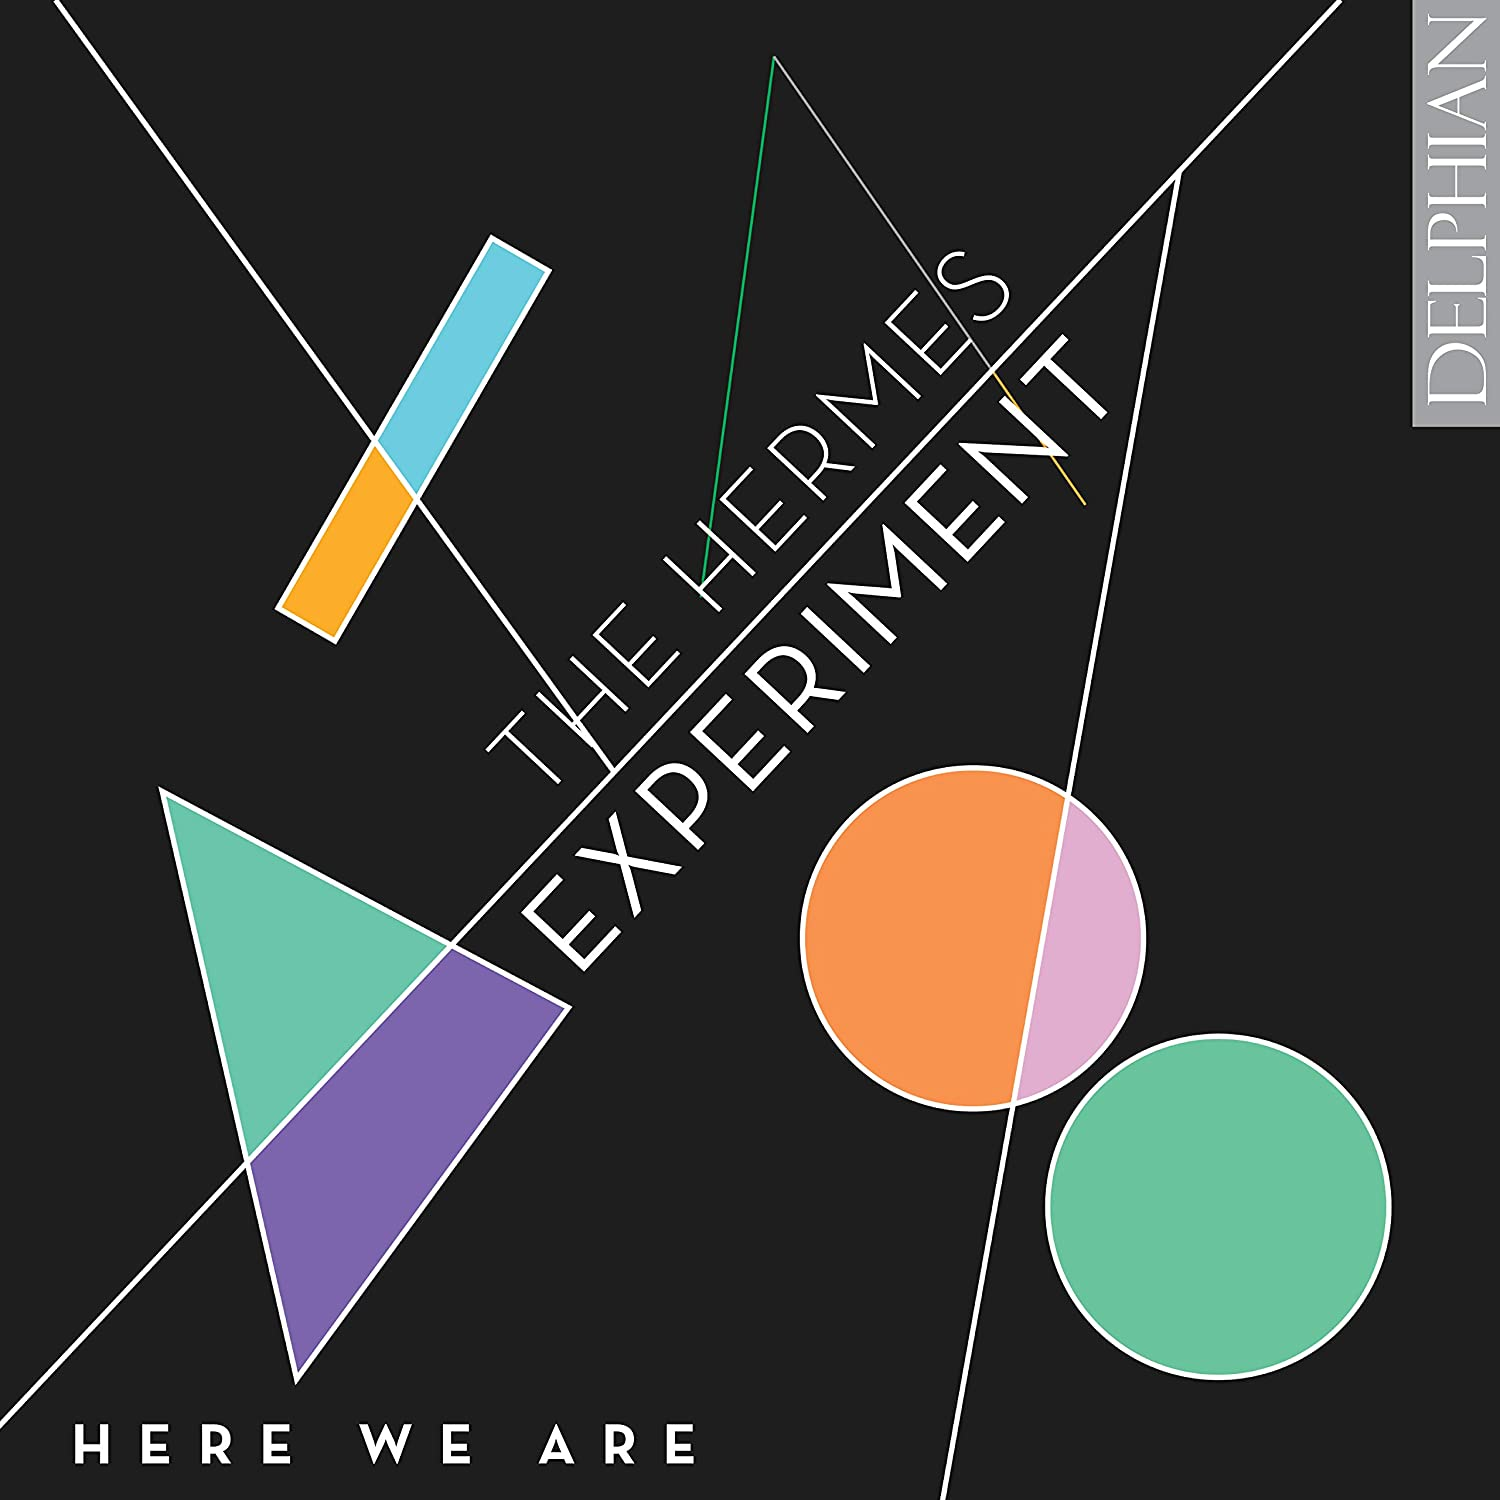 DCD34244. The Hermes Experiment: Here We Are